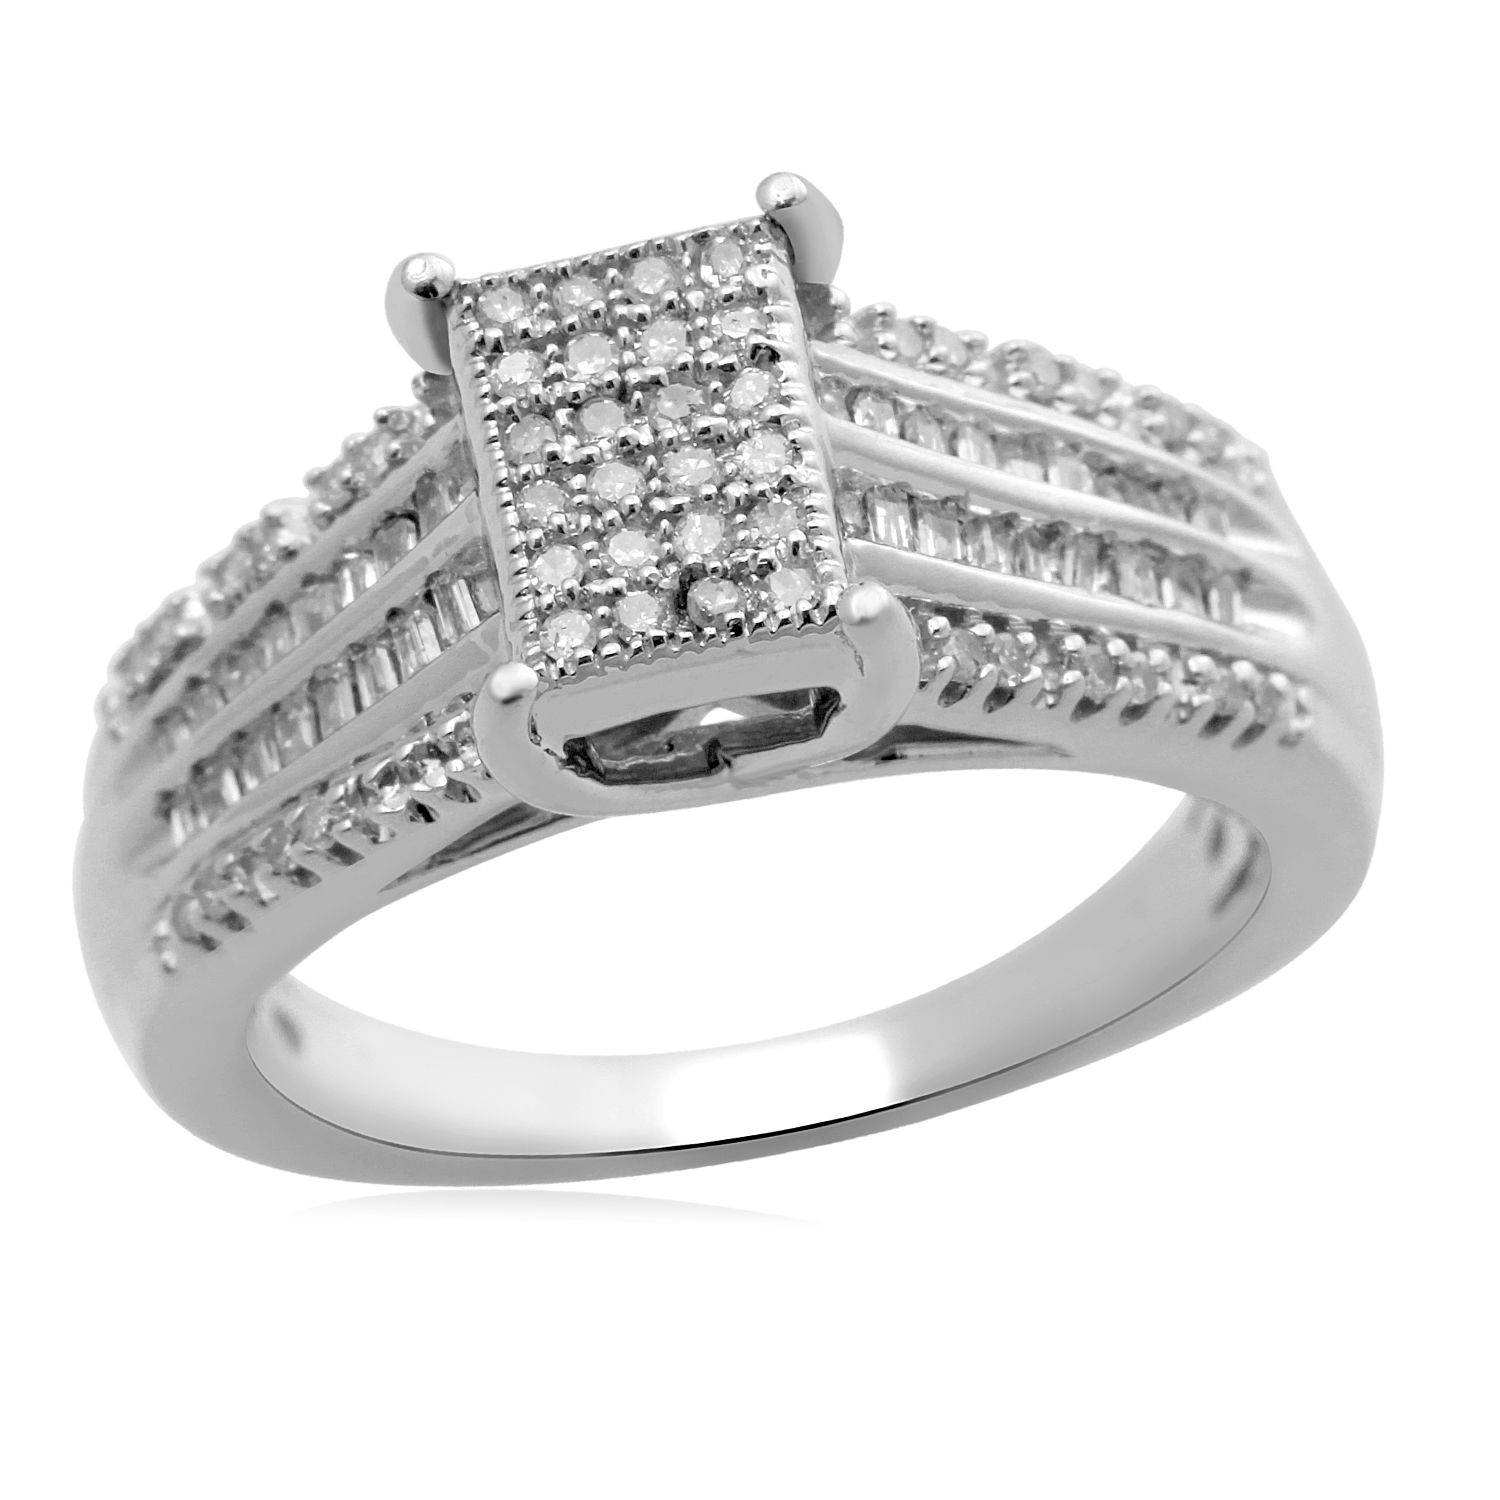 Kmart Jewelry Wedding Rings